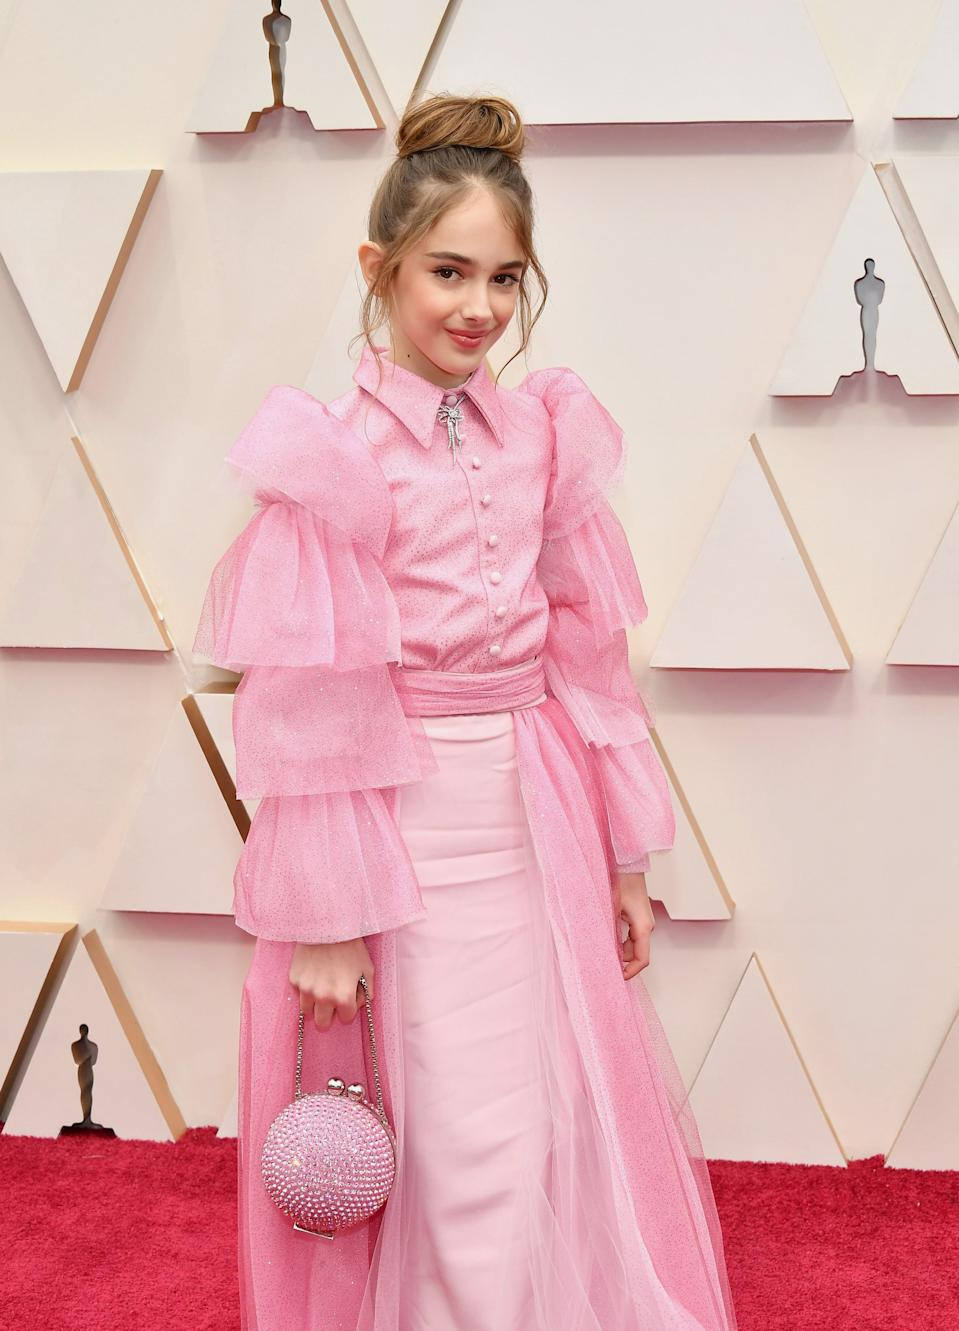 Julia Butters, 10, used the space in her six-inch crystal purse wisely at the Oscars: She packed a sandwich in it. (Photo: Amy Sussman/Getty Images)